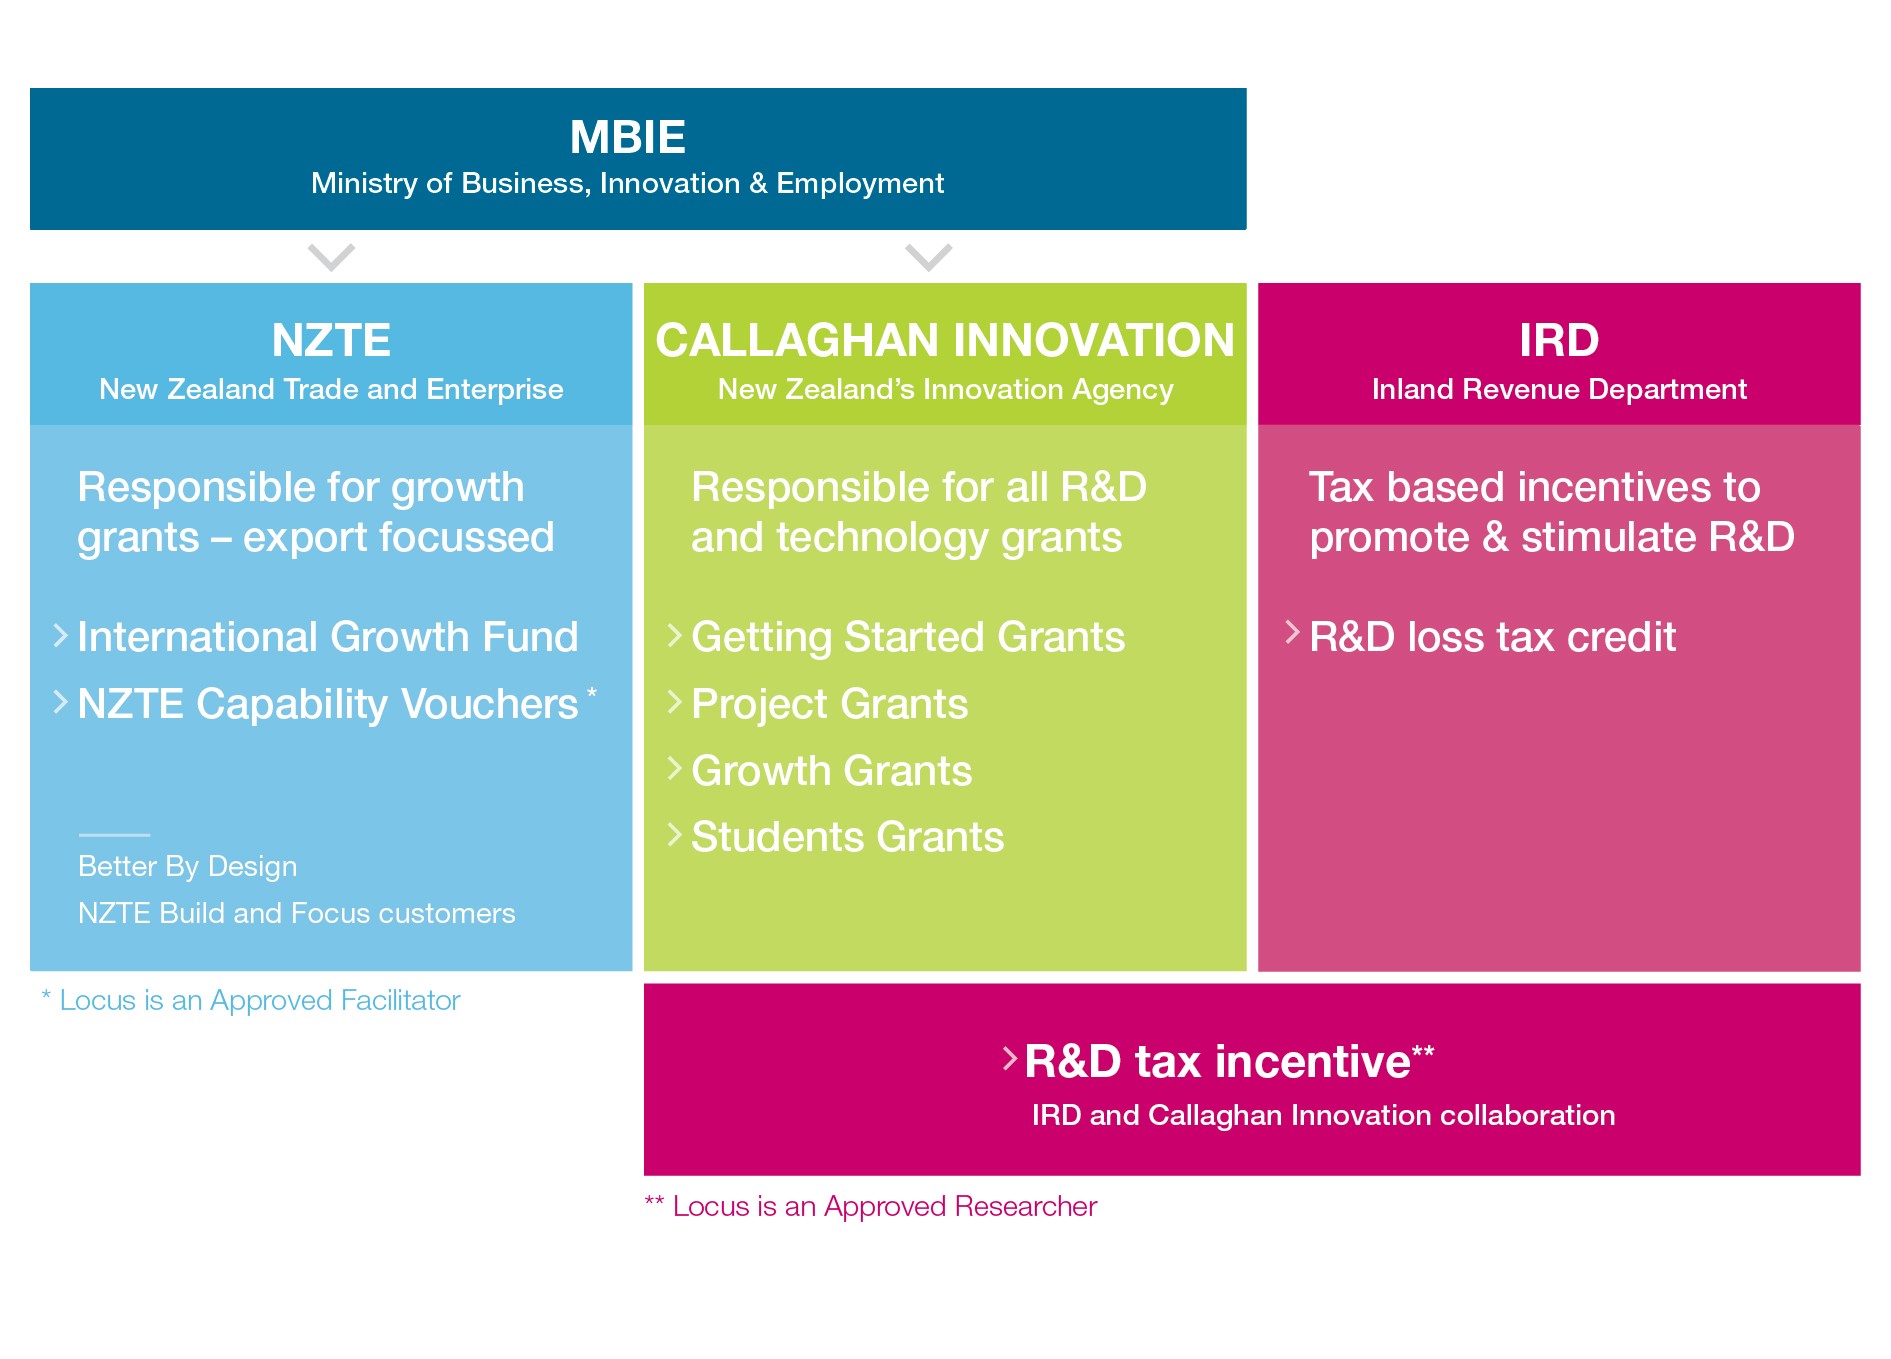 R&D Landscape in New Zealand